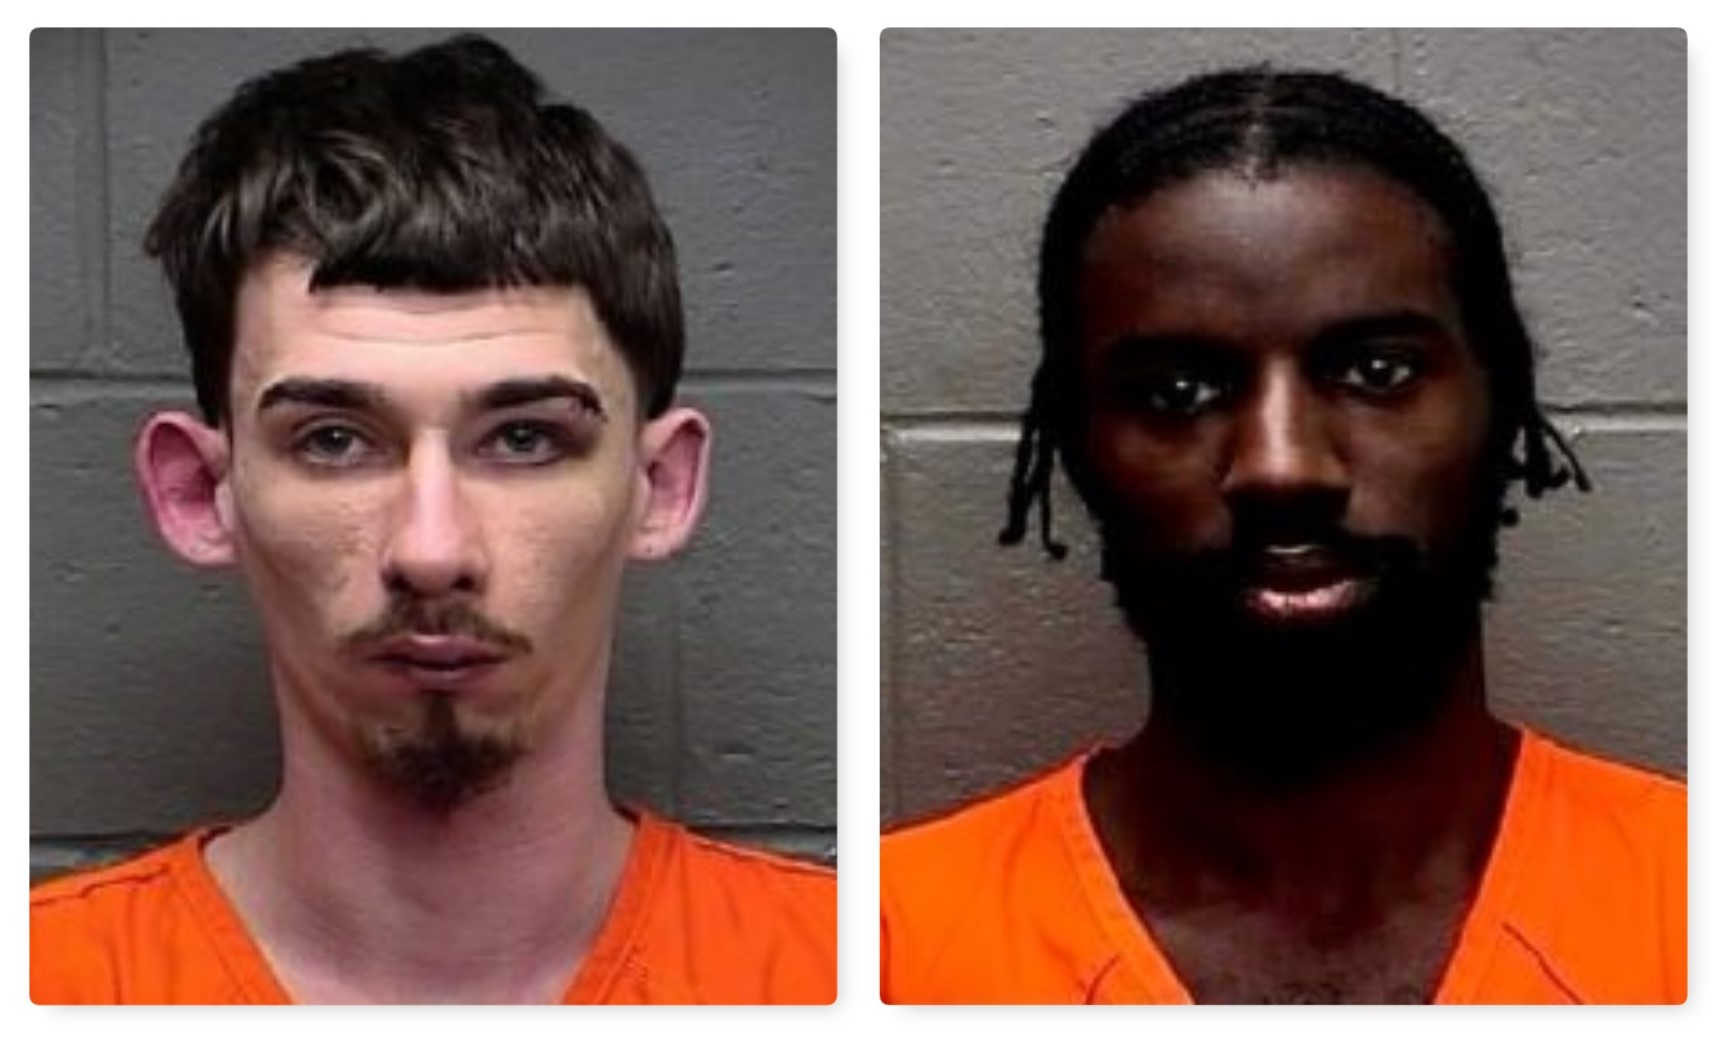 Two arrested in shooting of man in casino valet area